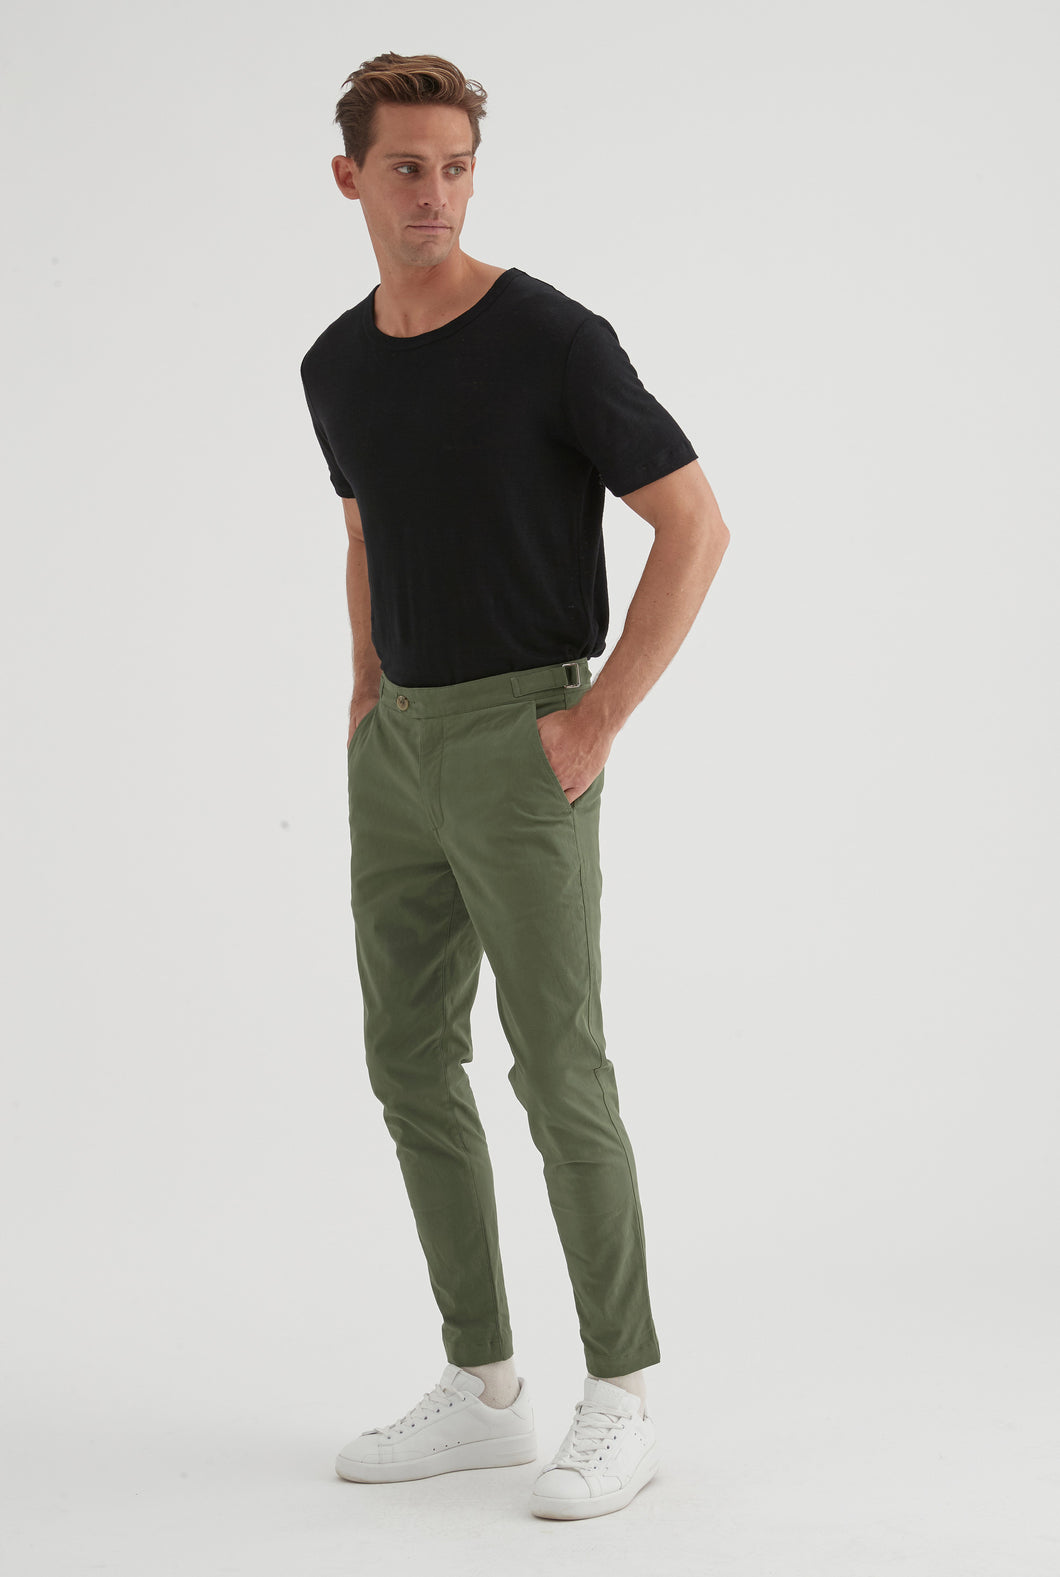 Cotton Stretch Side Tab Trouser - Dark Green